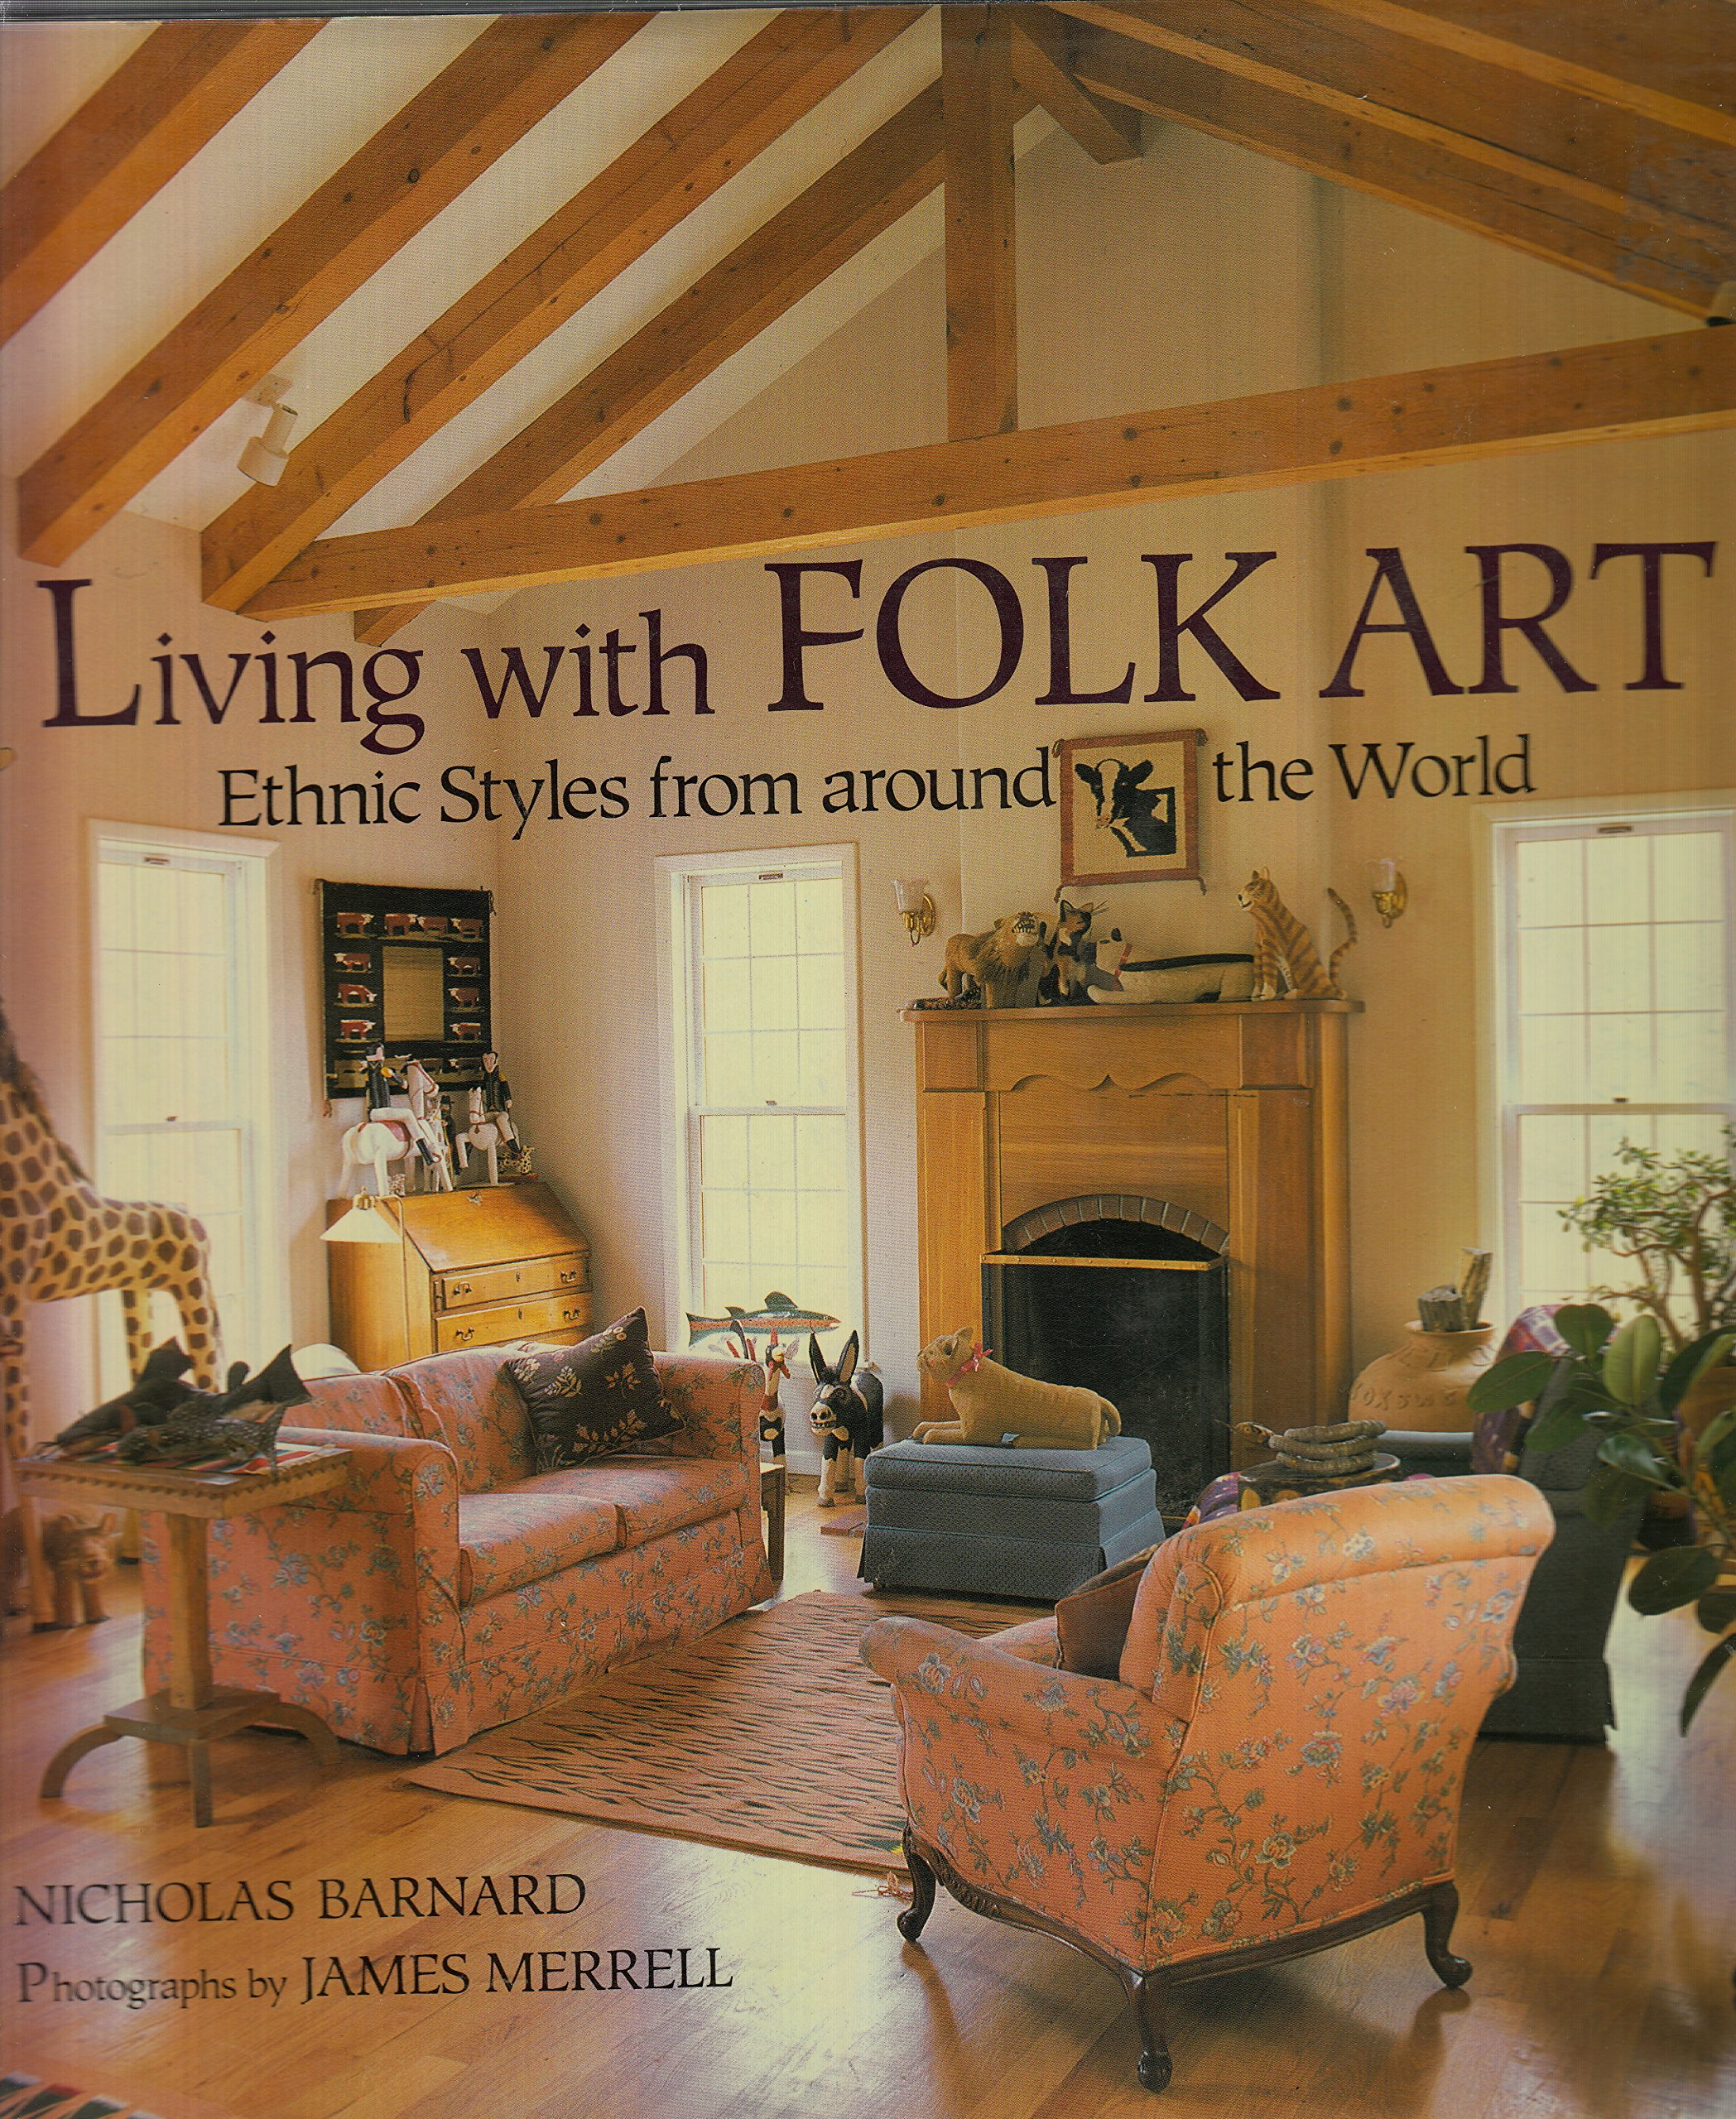 Living With Folk Art: Ethnic Styles from Around the World